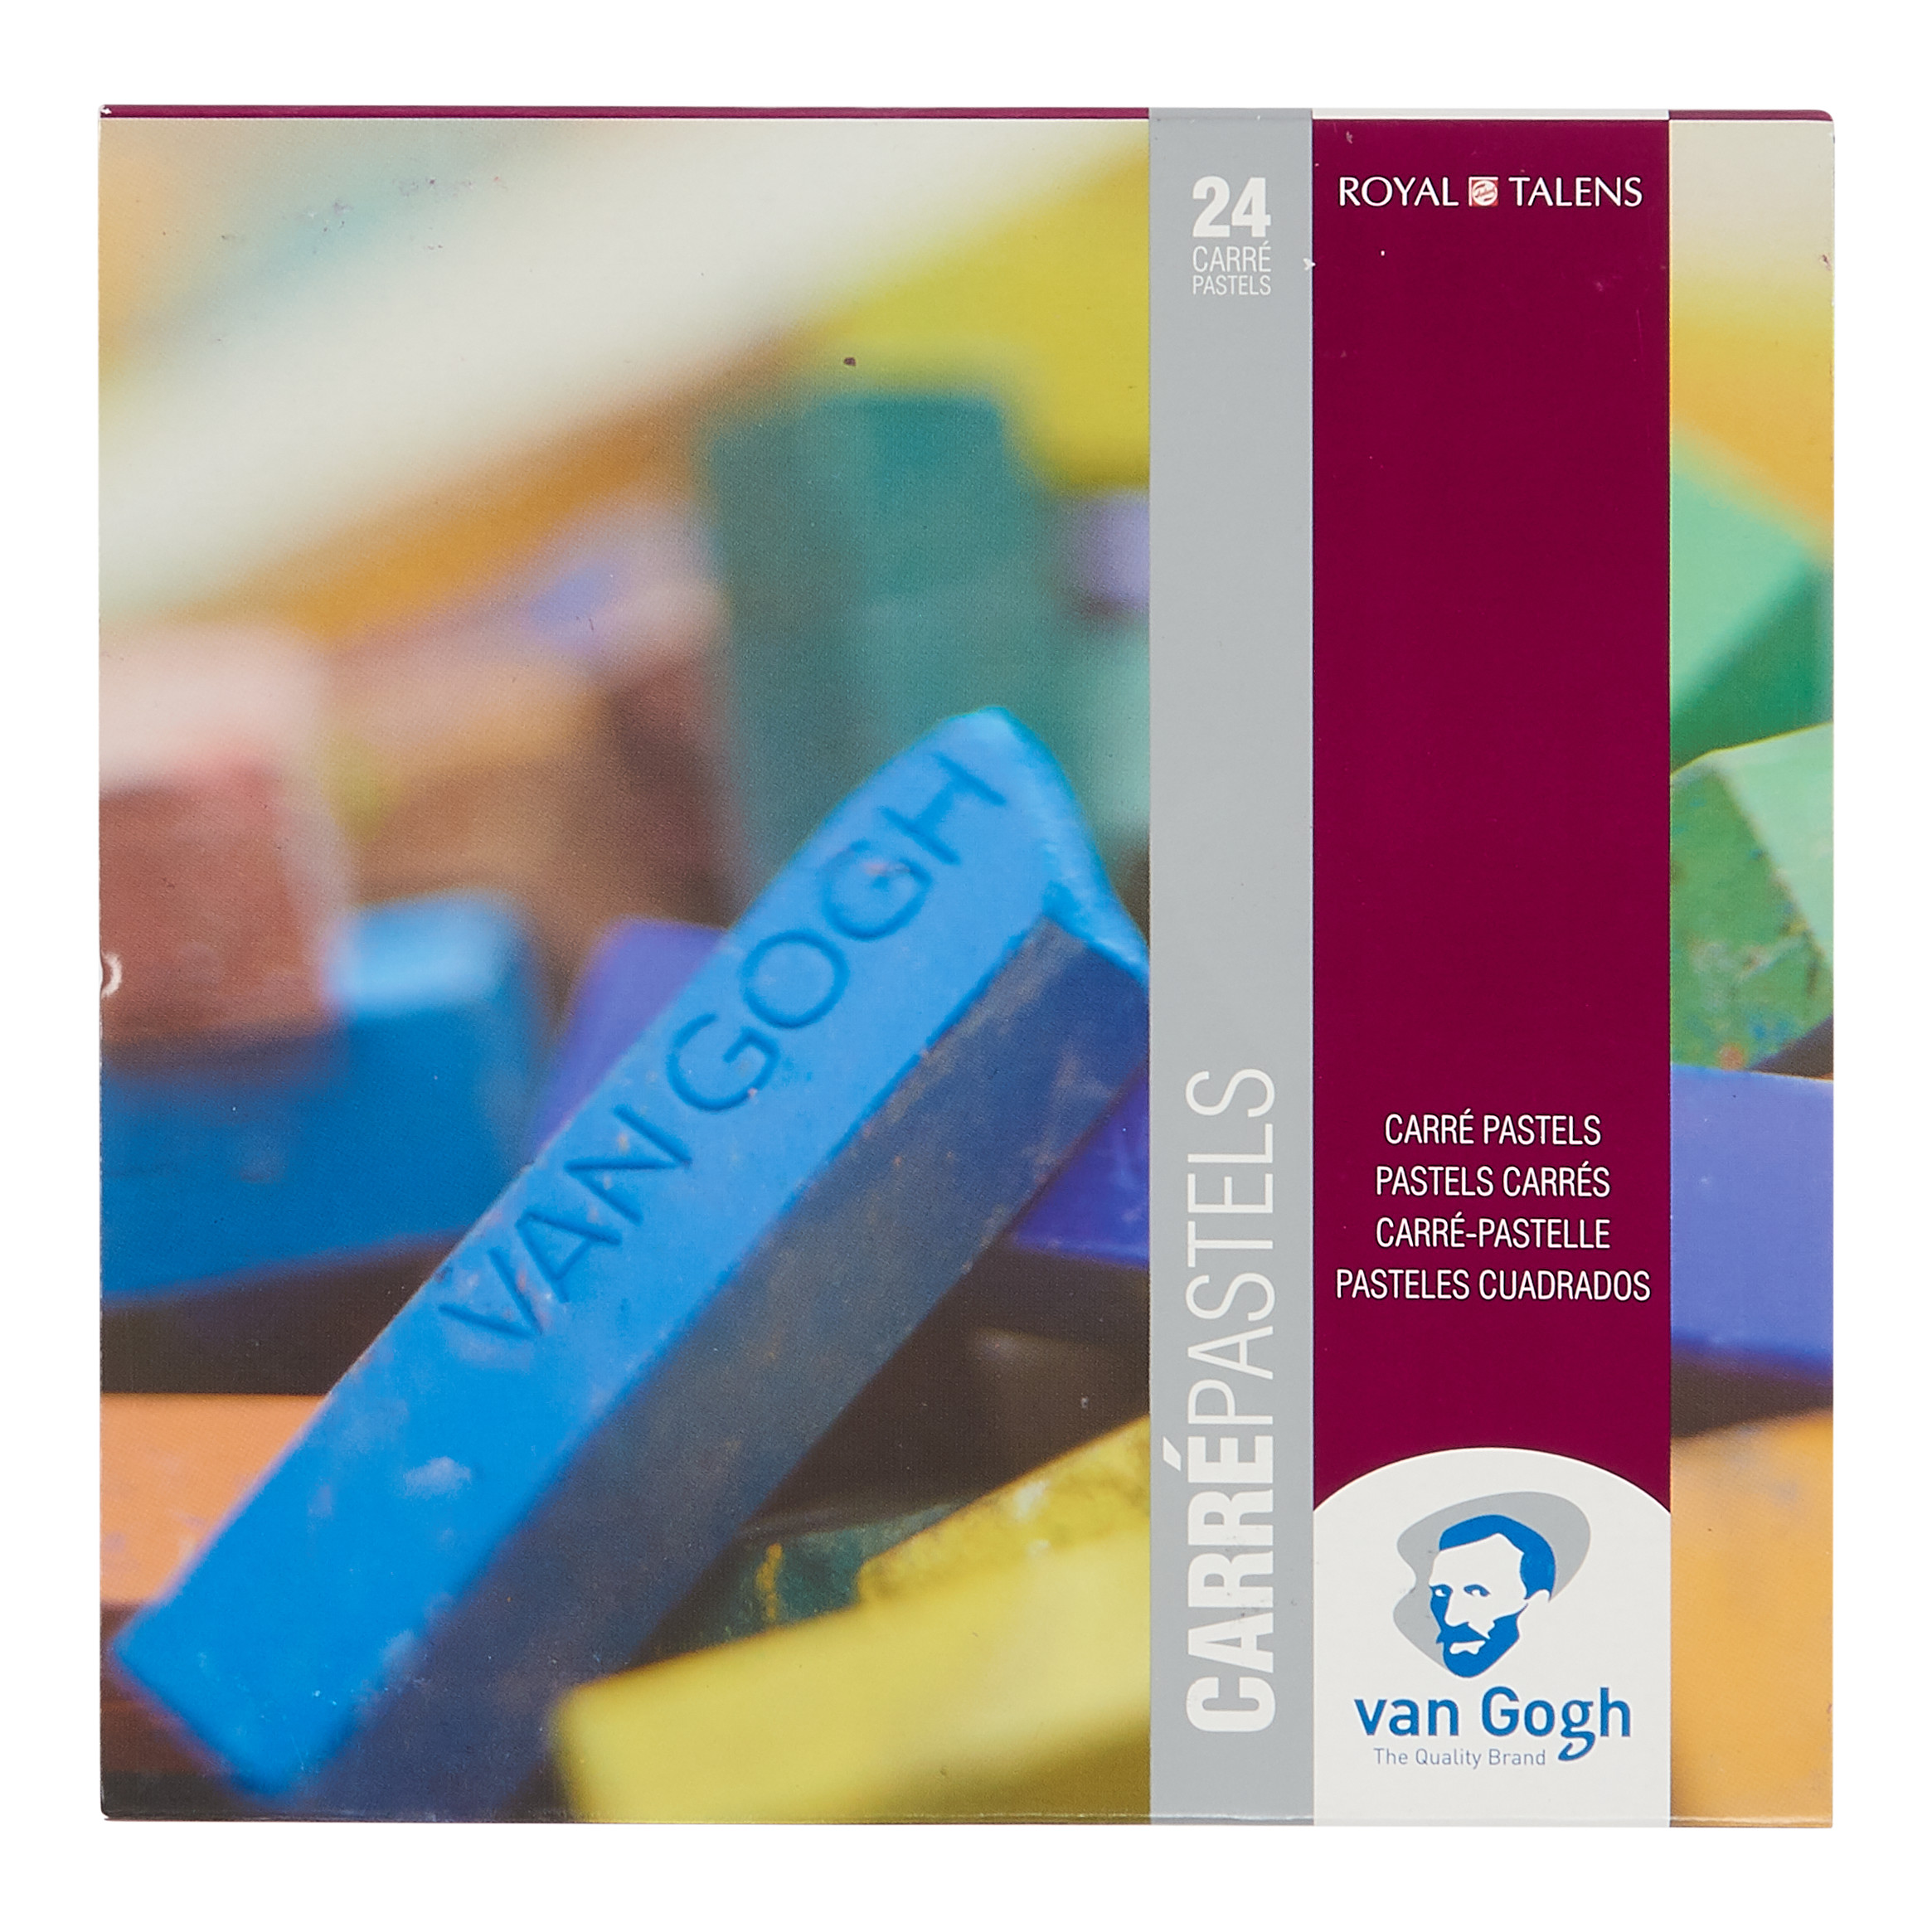 Van Gogh Carr? Pastels Basic Set with 24 Colours